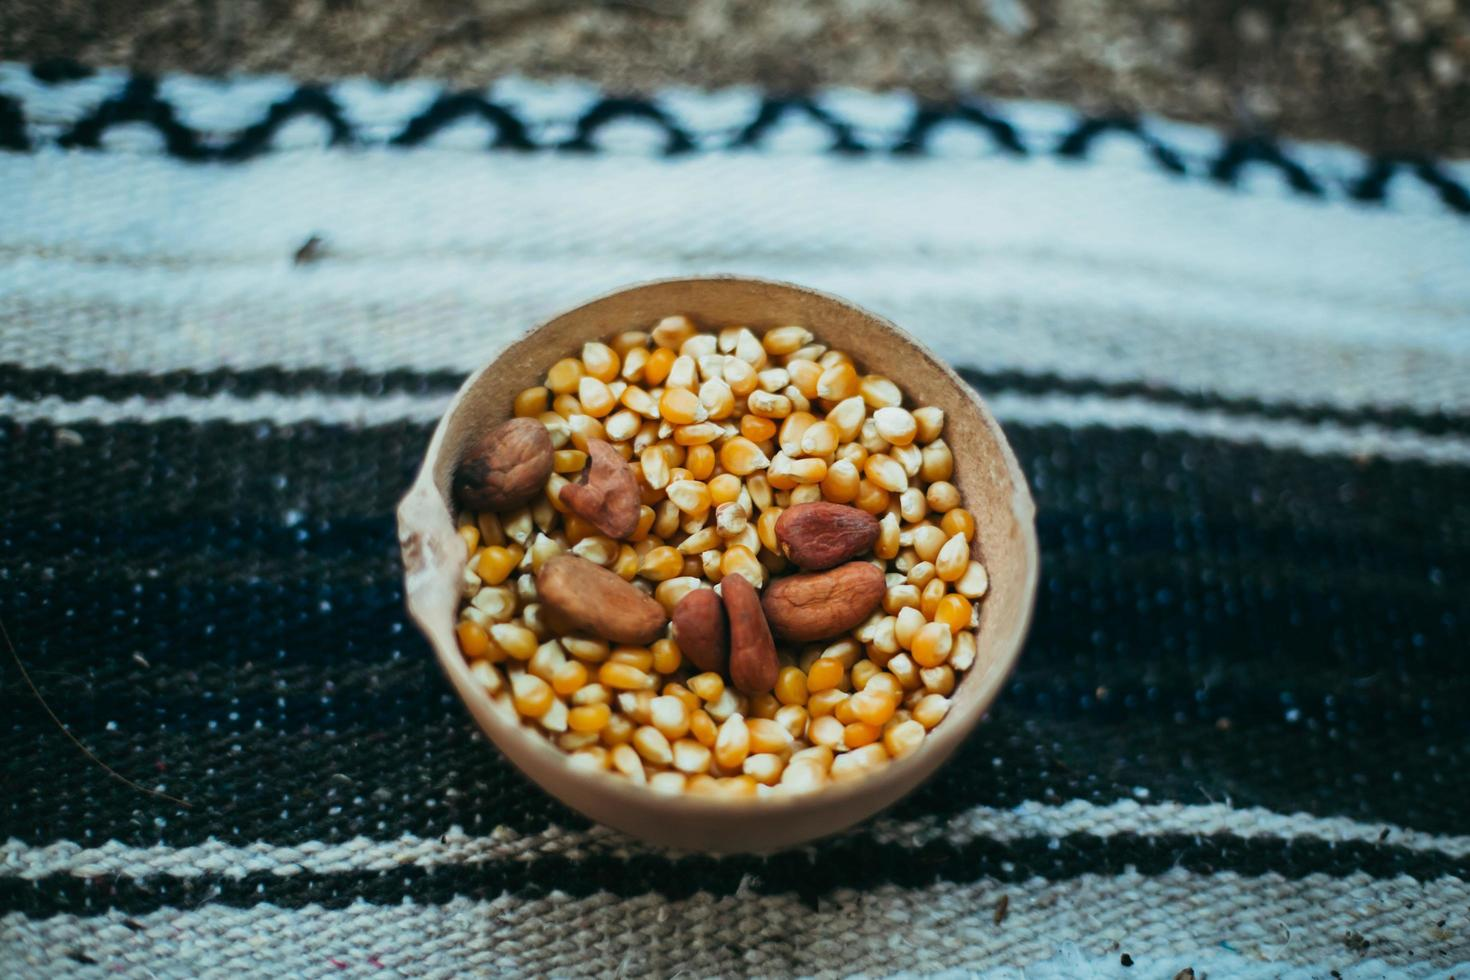 Bowl of corn and nuts photo